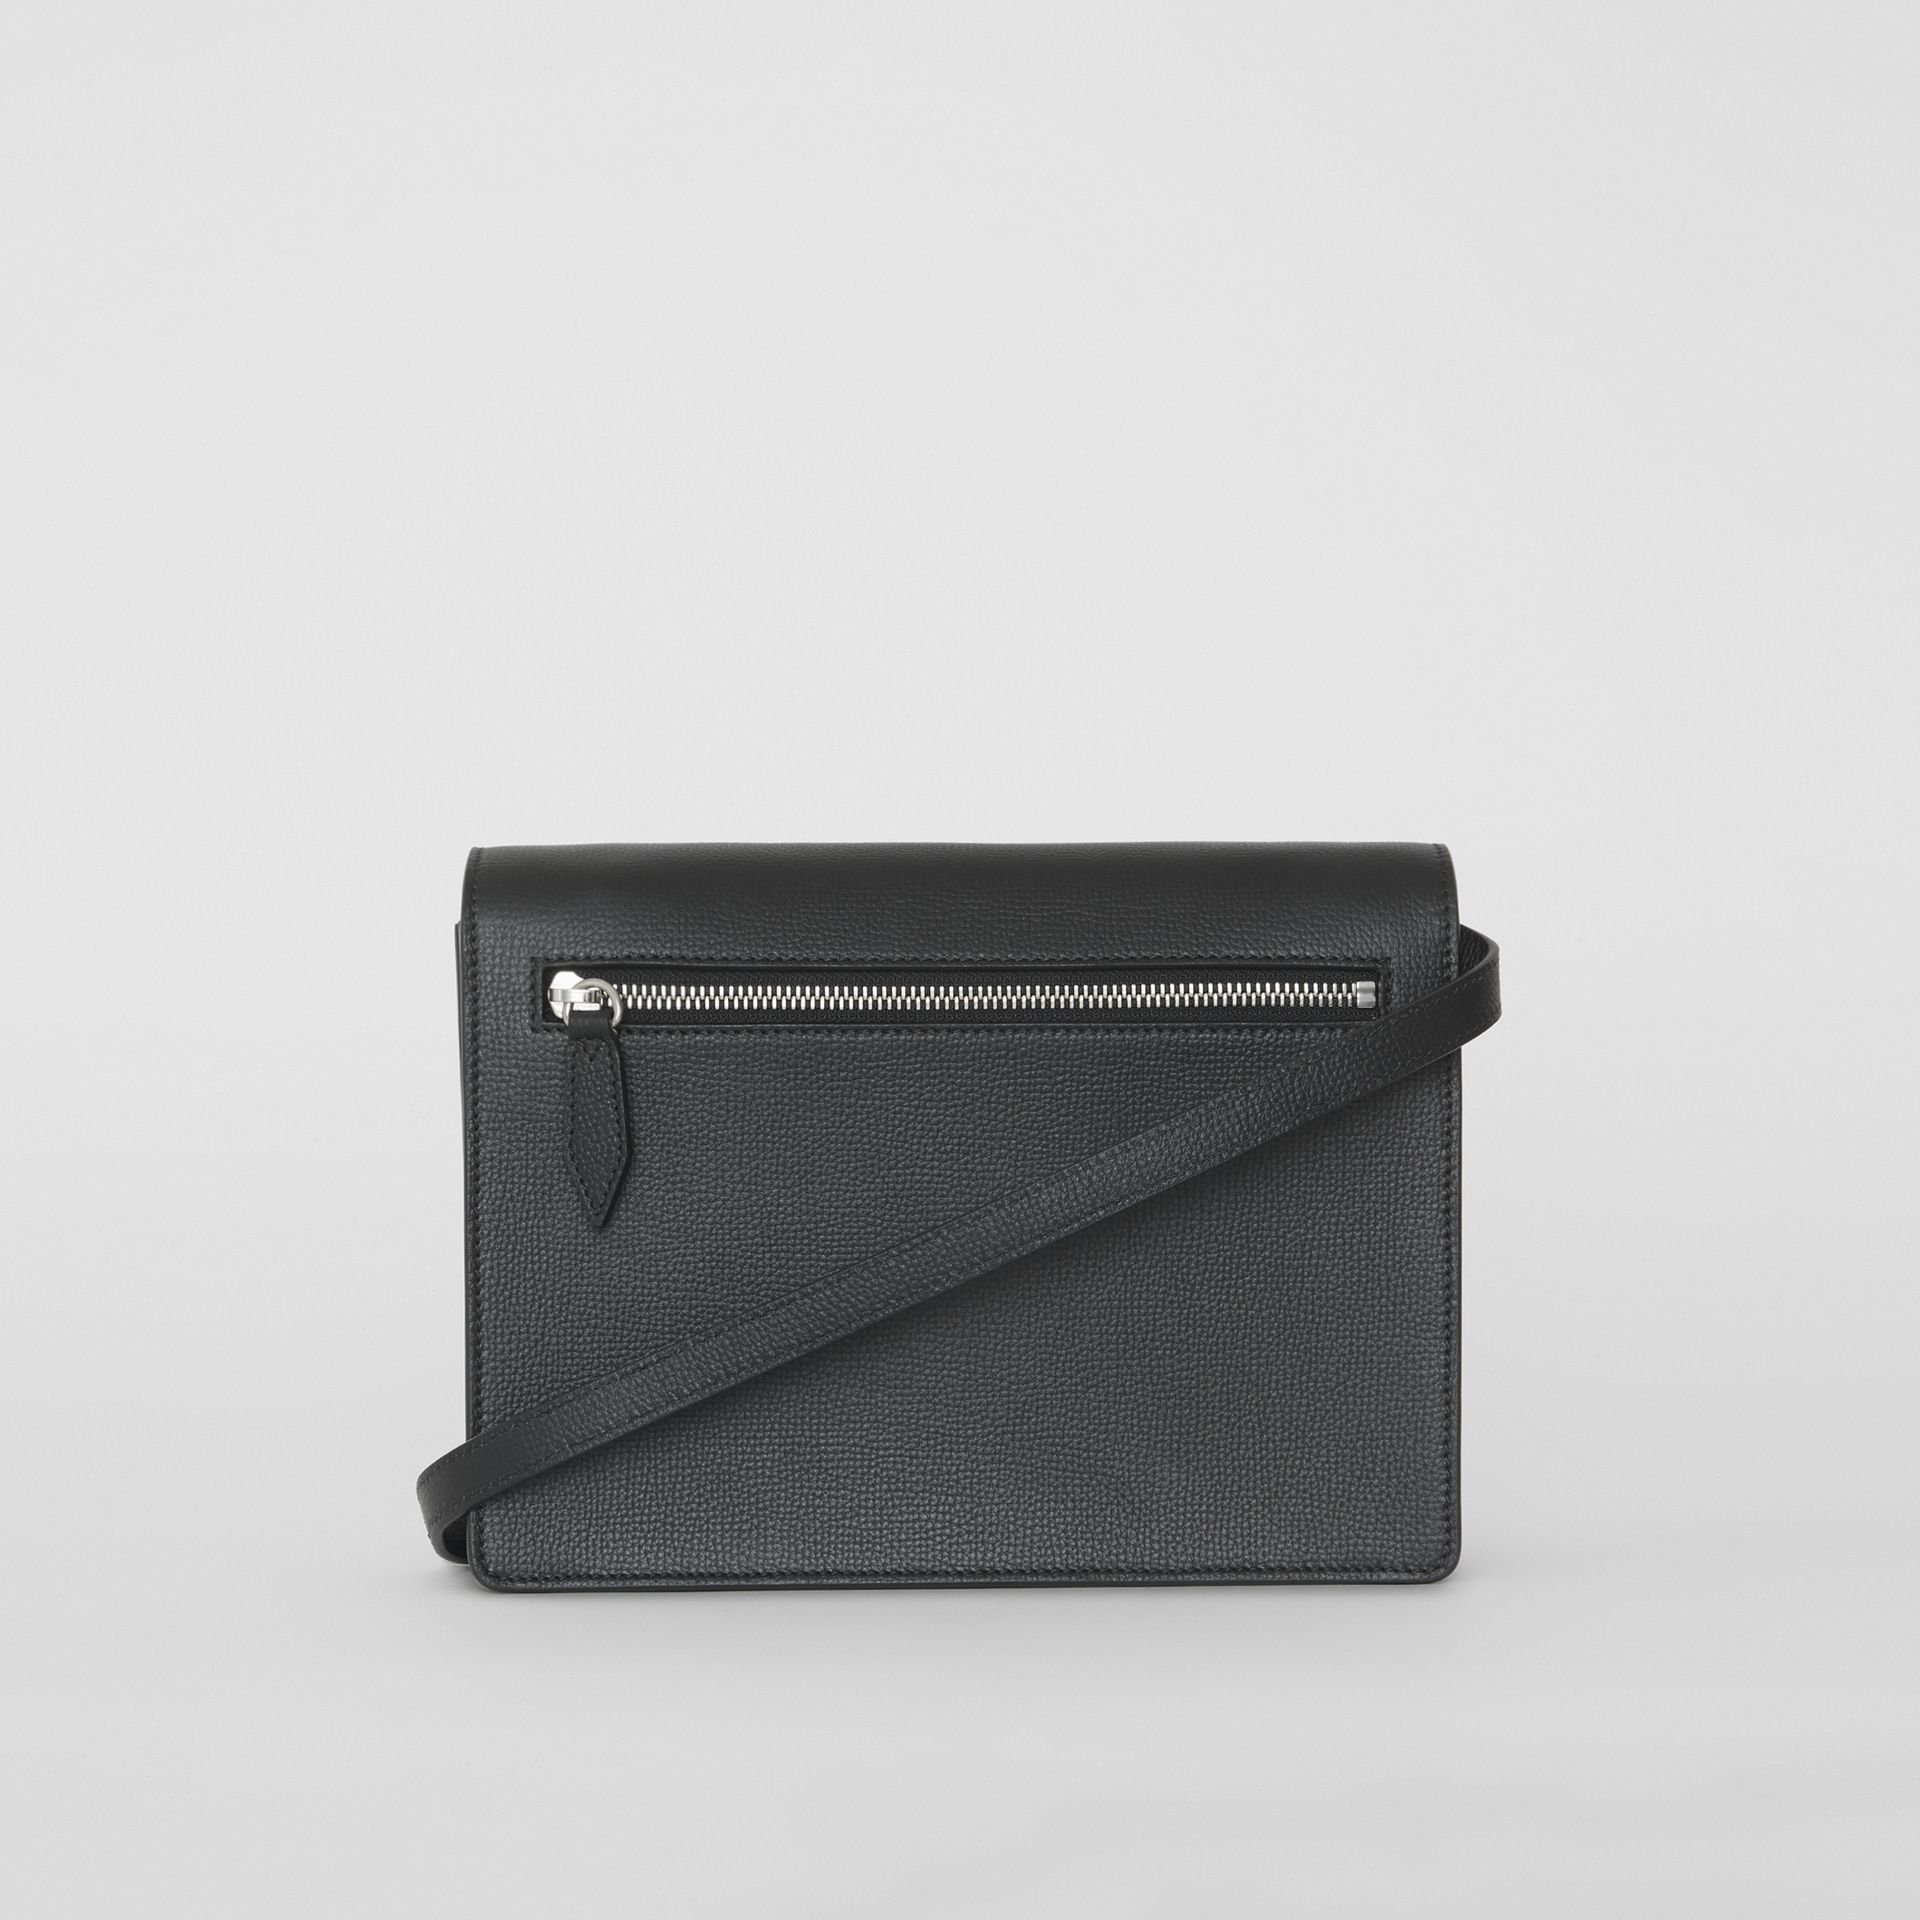 Small Vintage Check and Leather Crossbody Bag in Black - Women | Burberry Canada - gallery image 7